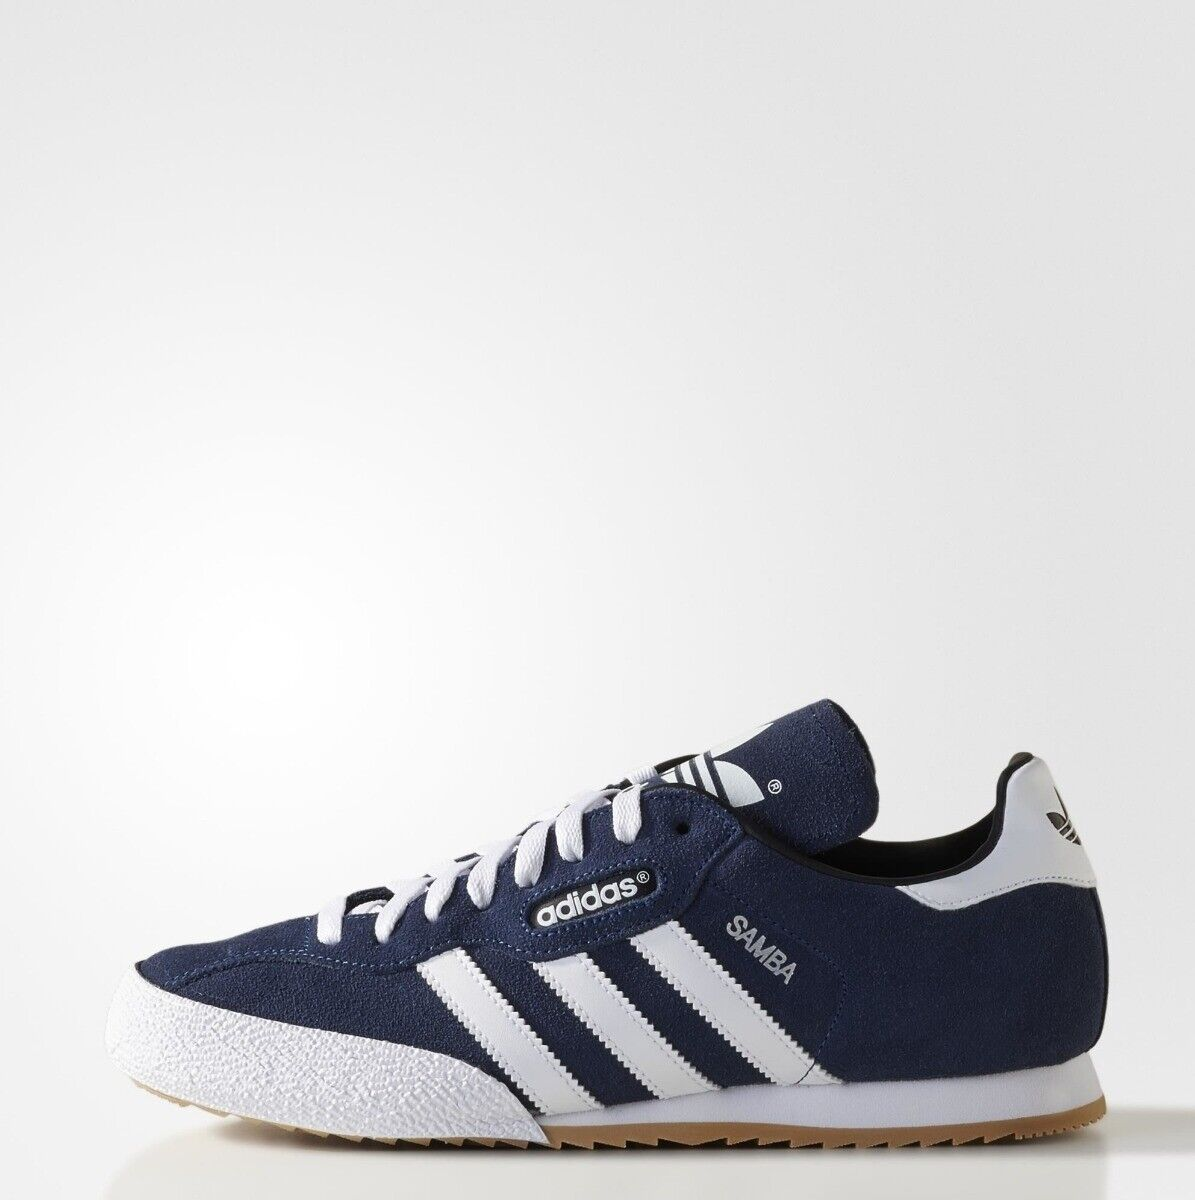 Adidas Samba Super Suede Mens Trainers shoes Navy White Size 7